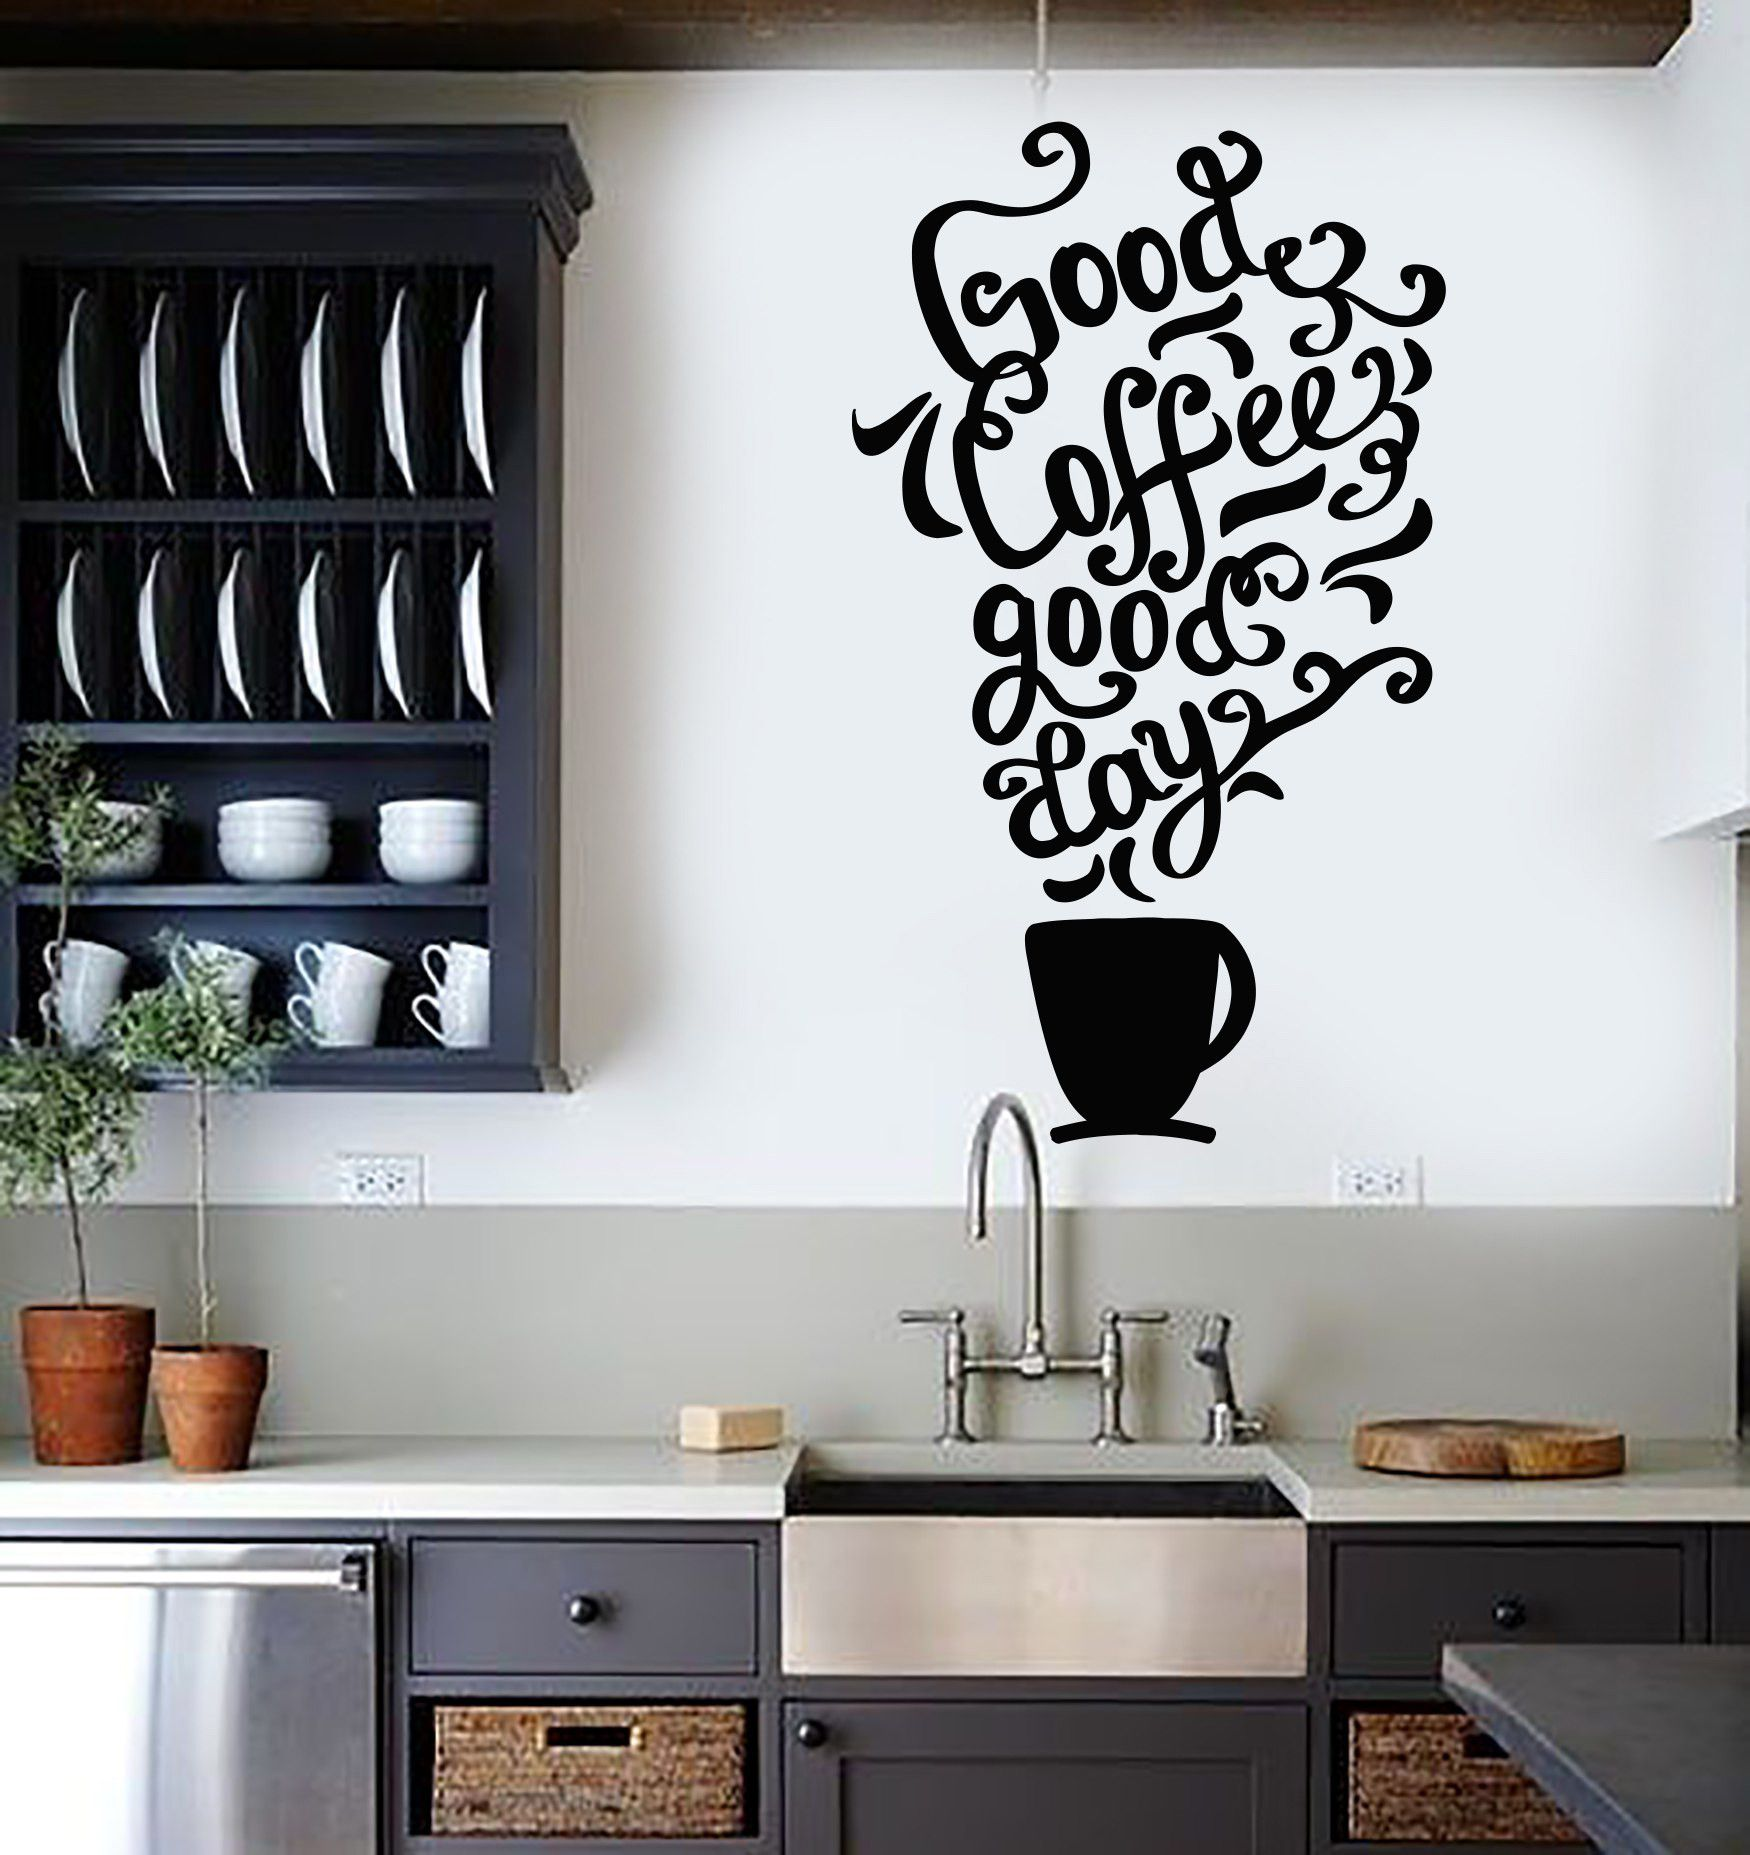 vinyl wall decal quote coffee kitchen shop restaurant cafe With what kind of paint to use on kitchen cabinets for football back plate stickers